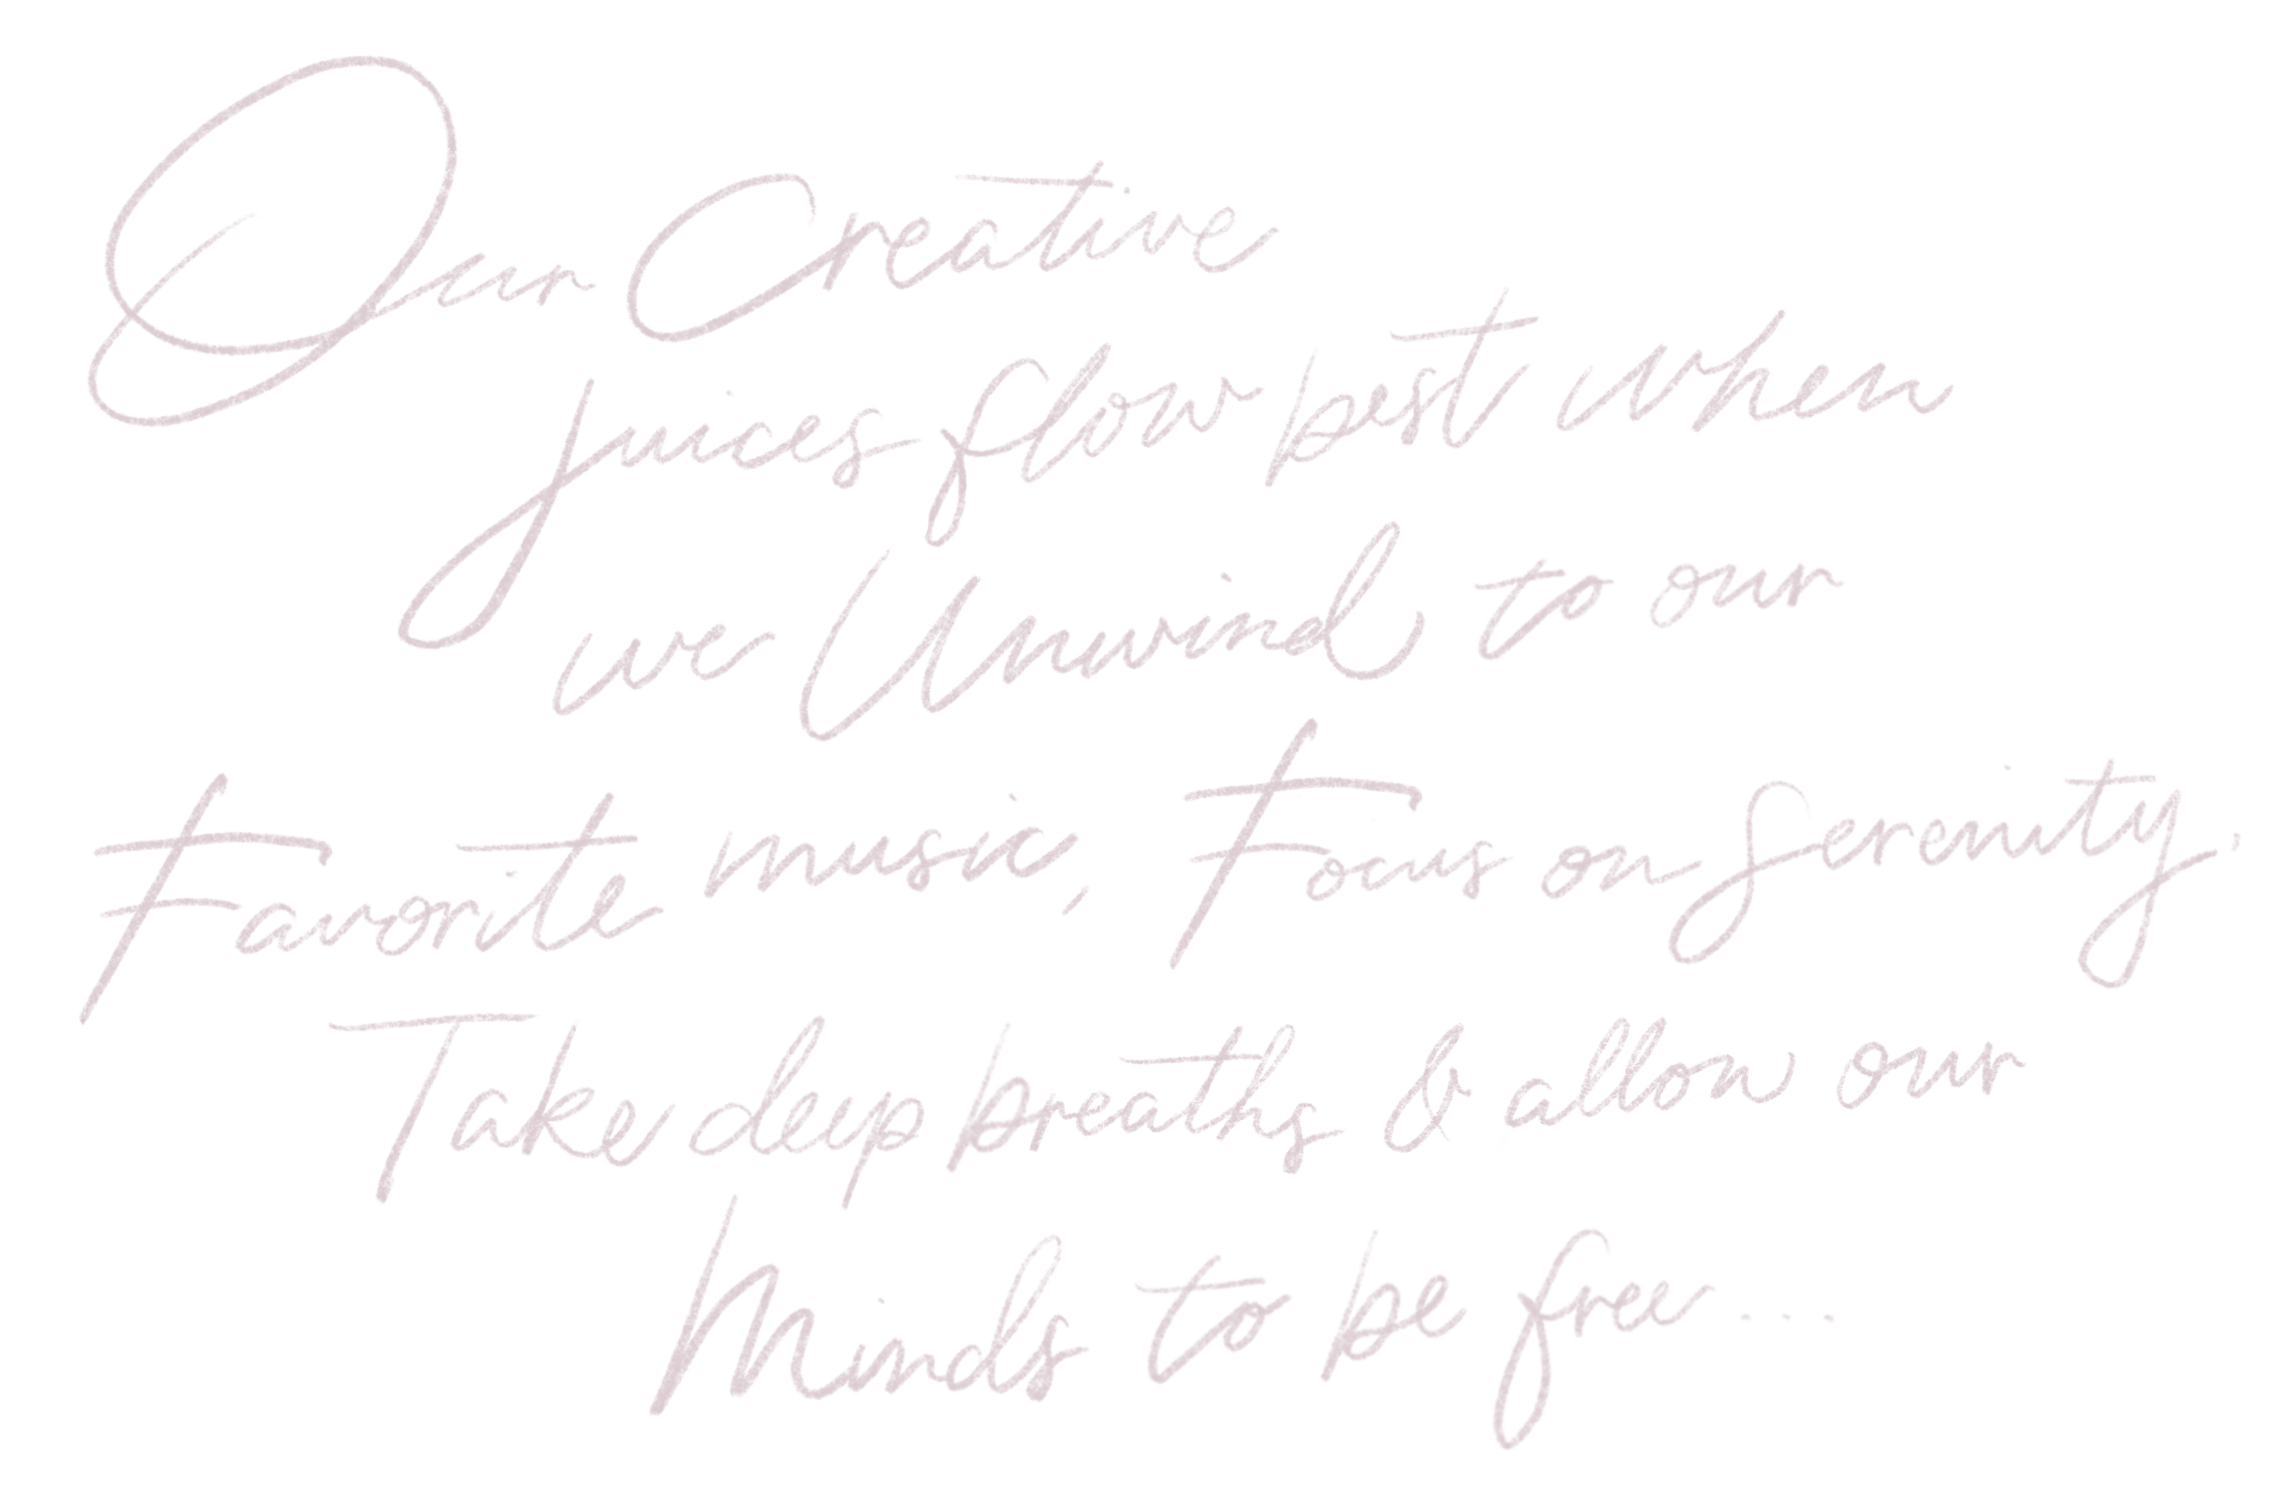 Our creative juices flow best when we unwind to our favorite music, focus on serenity, take deep breaths and allow our minds to be free